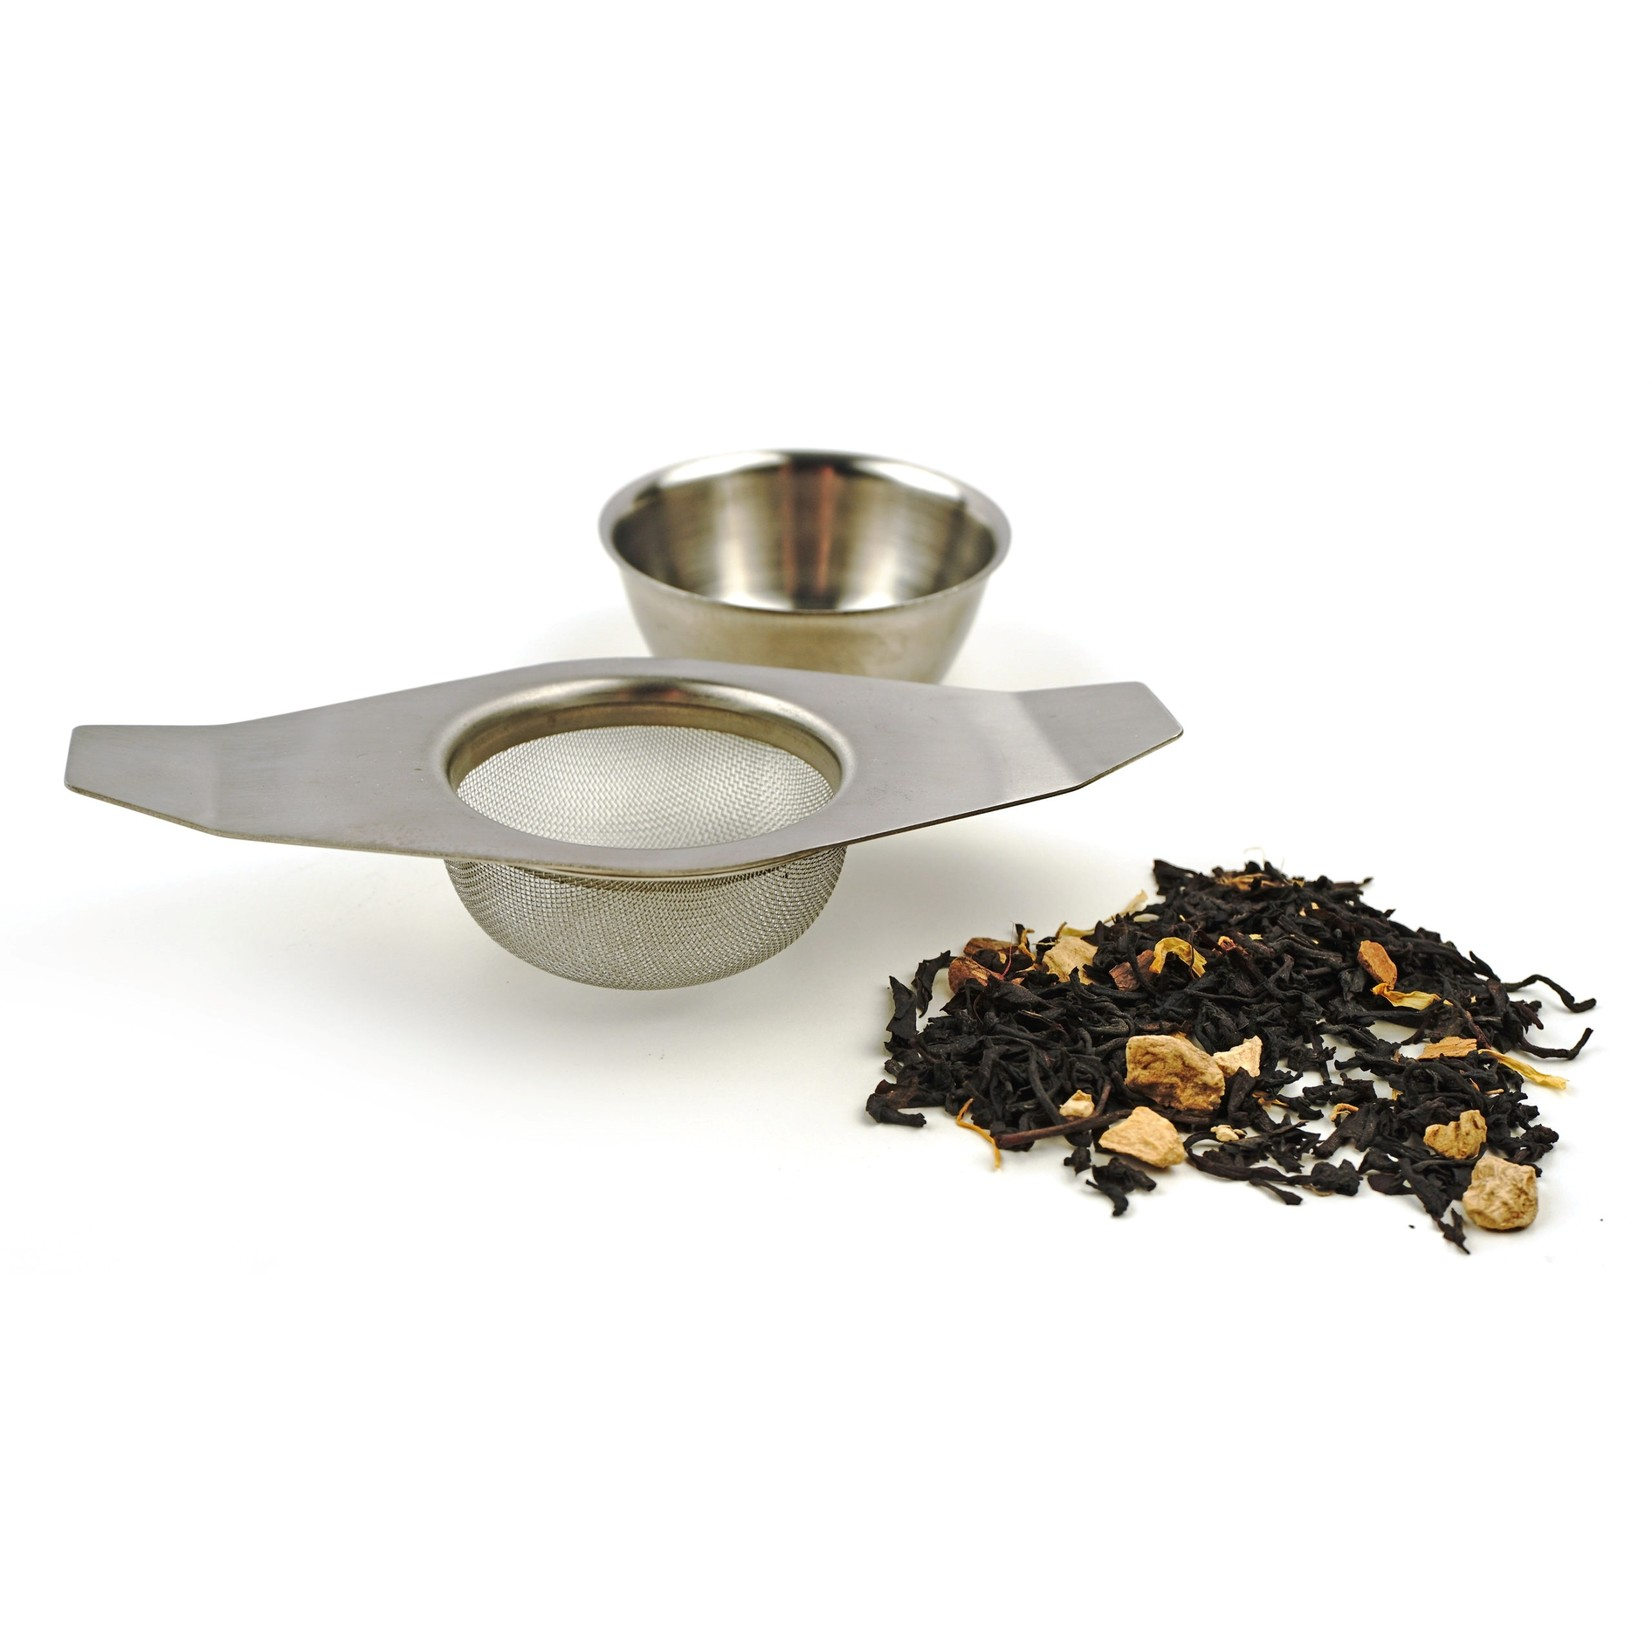 RSVP International Endurance Tea Strainer